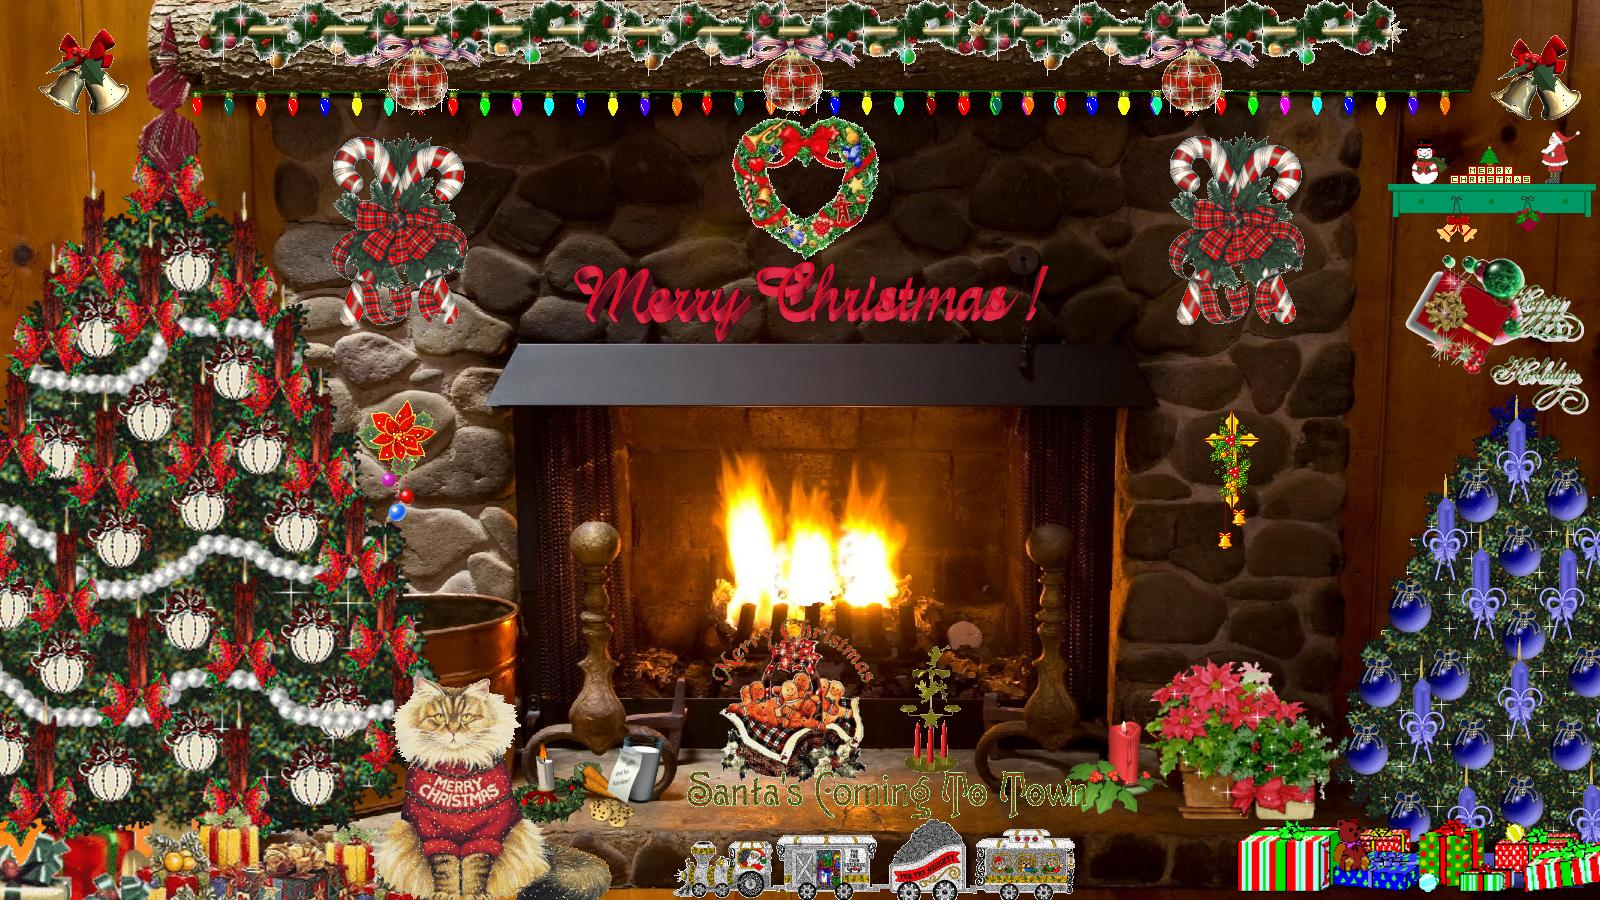 creators of a holiday christmaschristmas fireplace fireplace wallpaper 1600x900